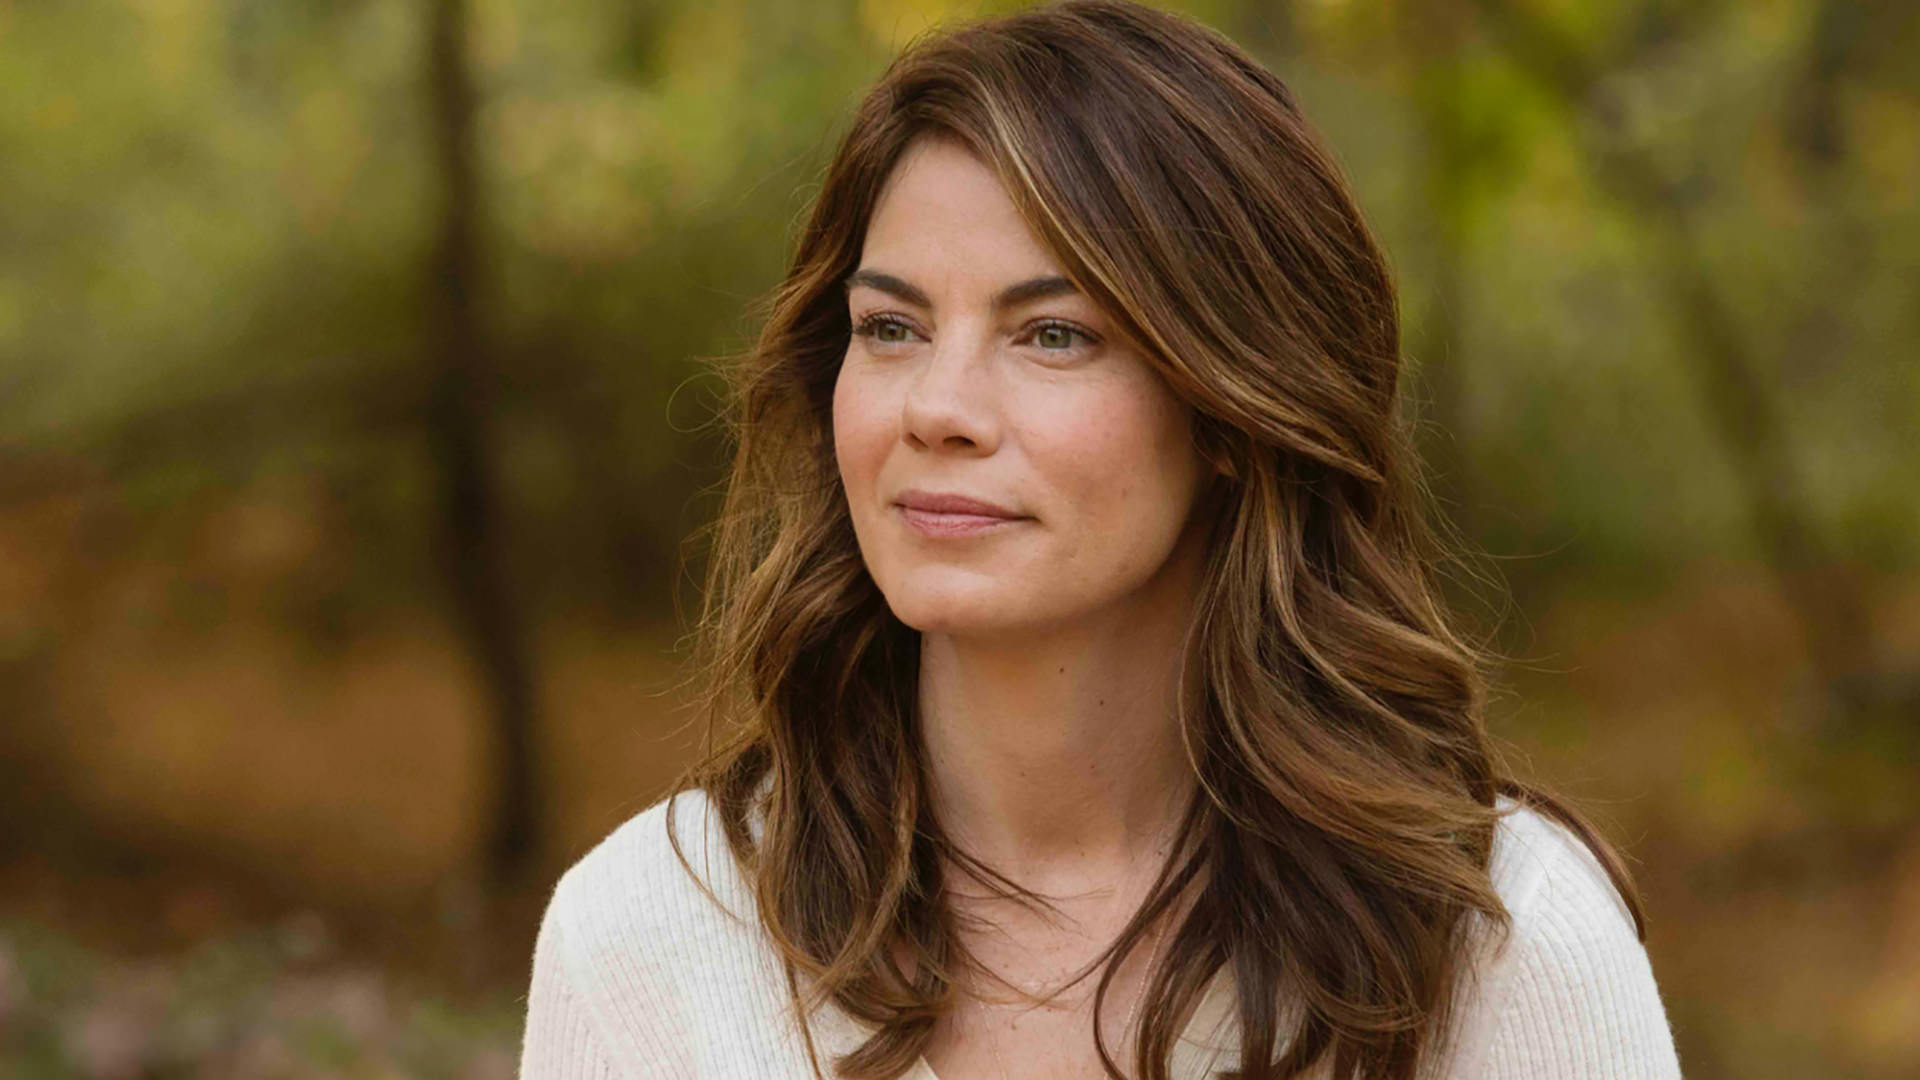 Lovely Michelle Monaghan Wallpaper Full HD Pictures